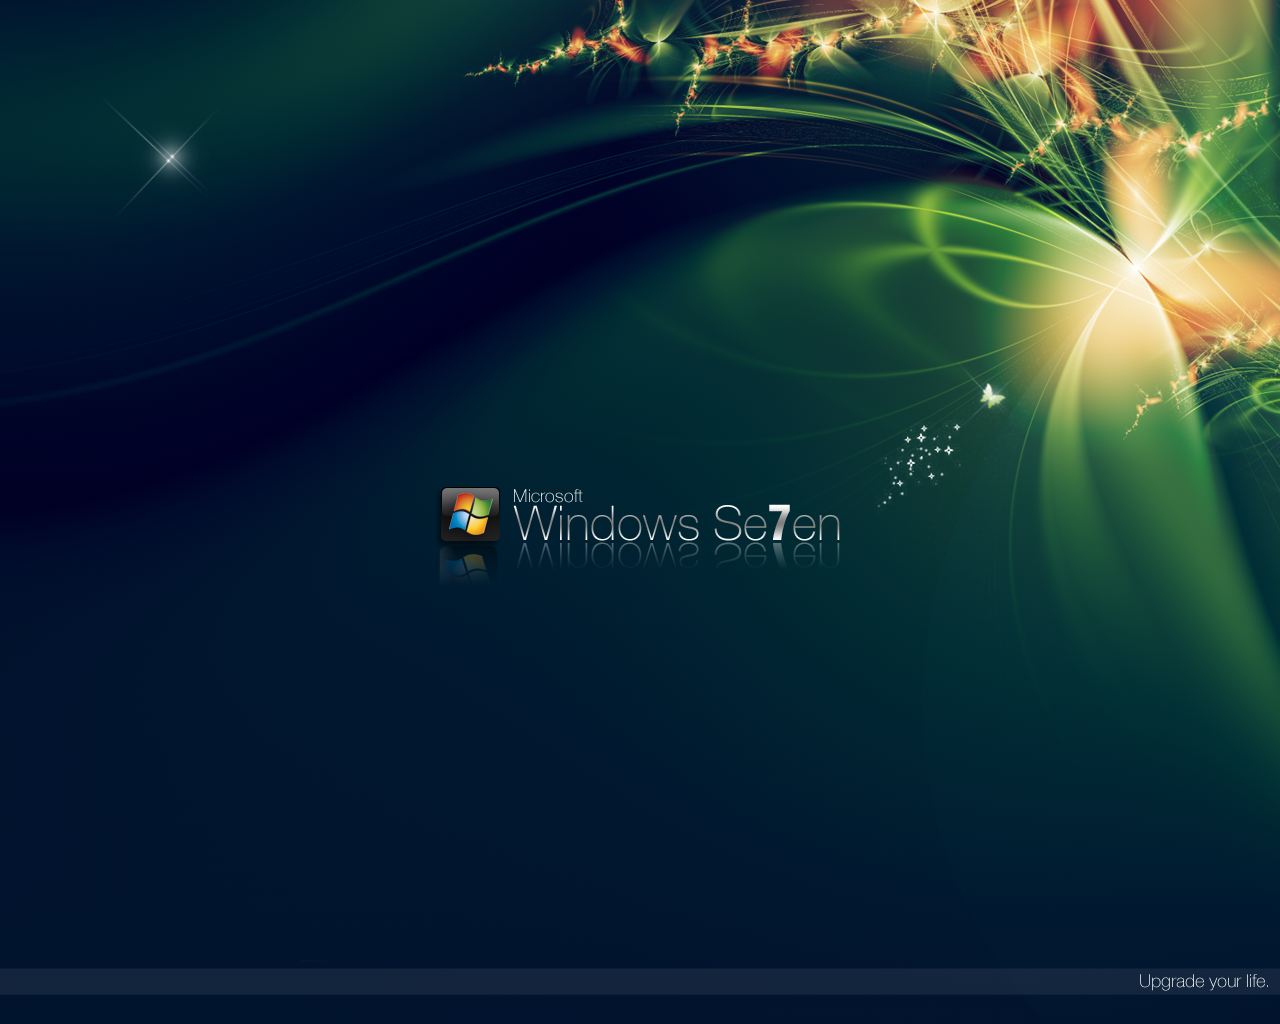 Download Wallpapers: Windows 7 Wallpapers